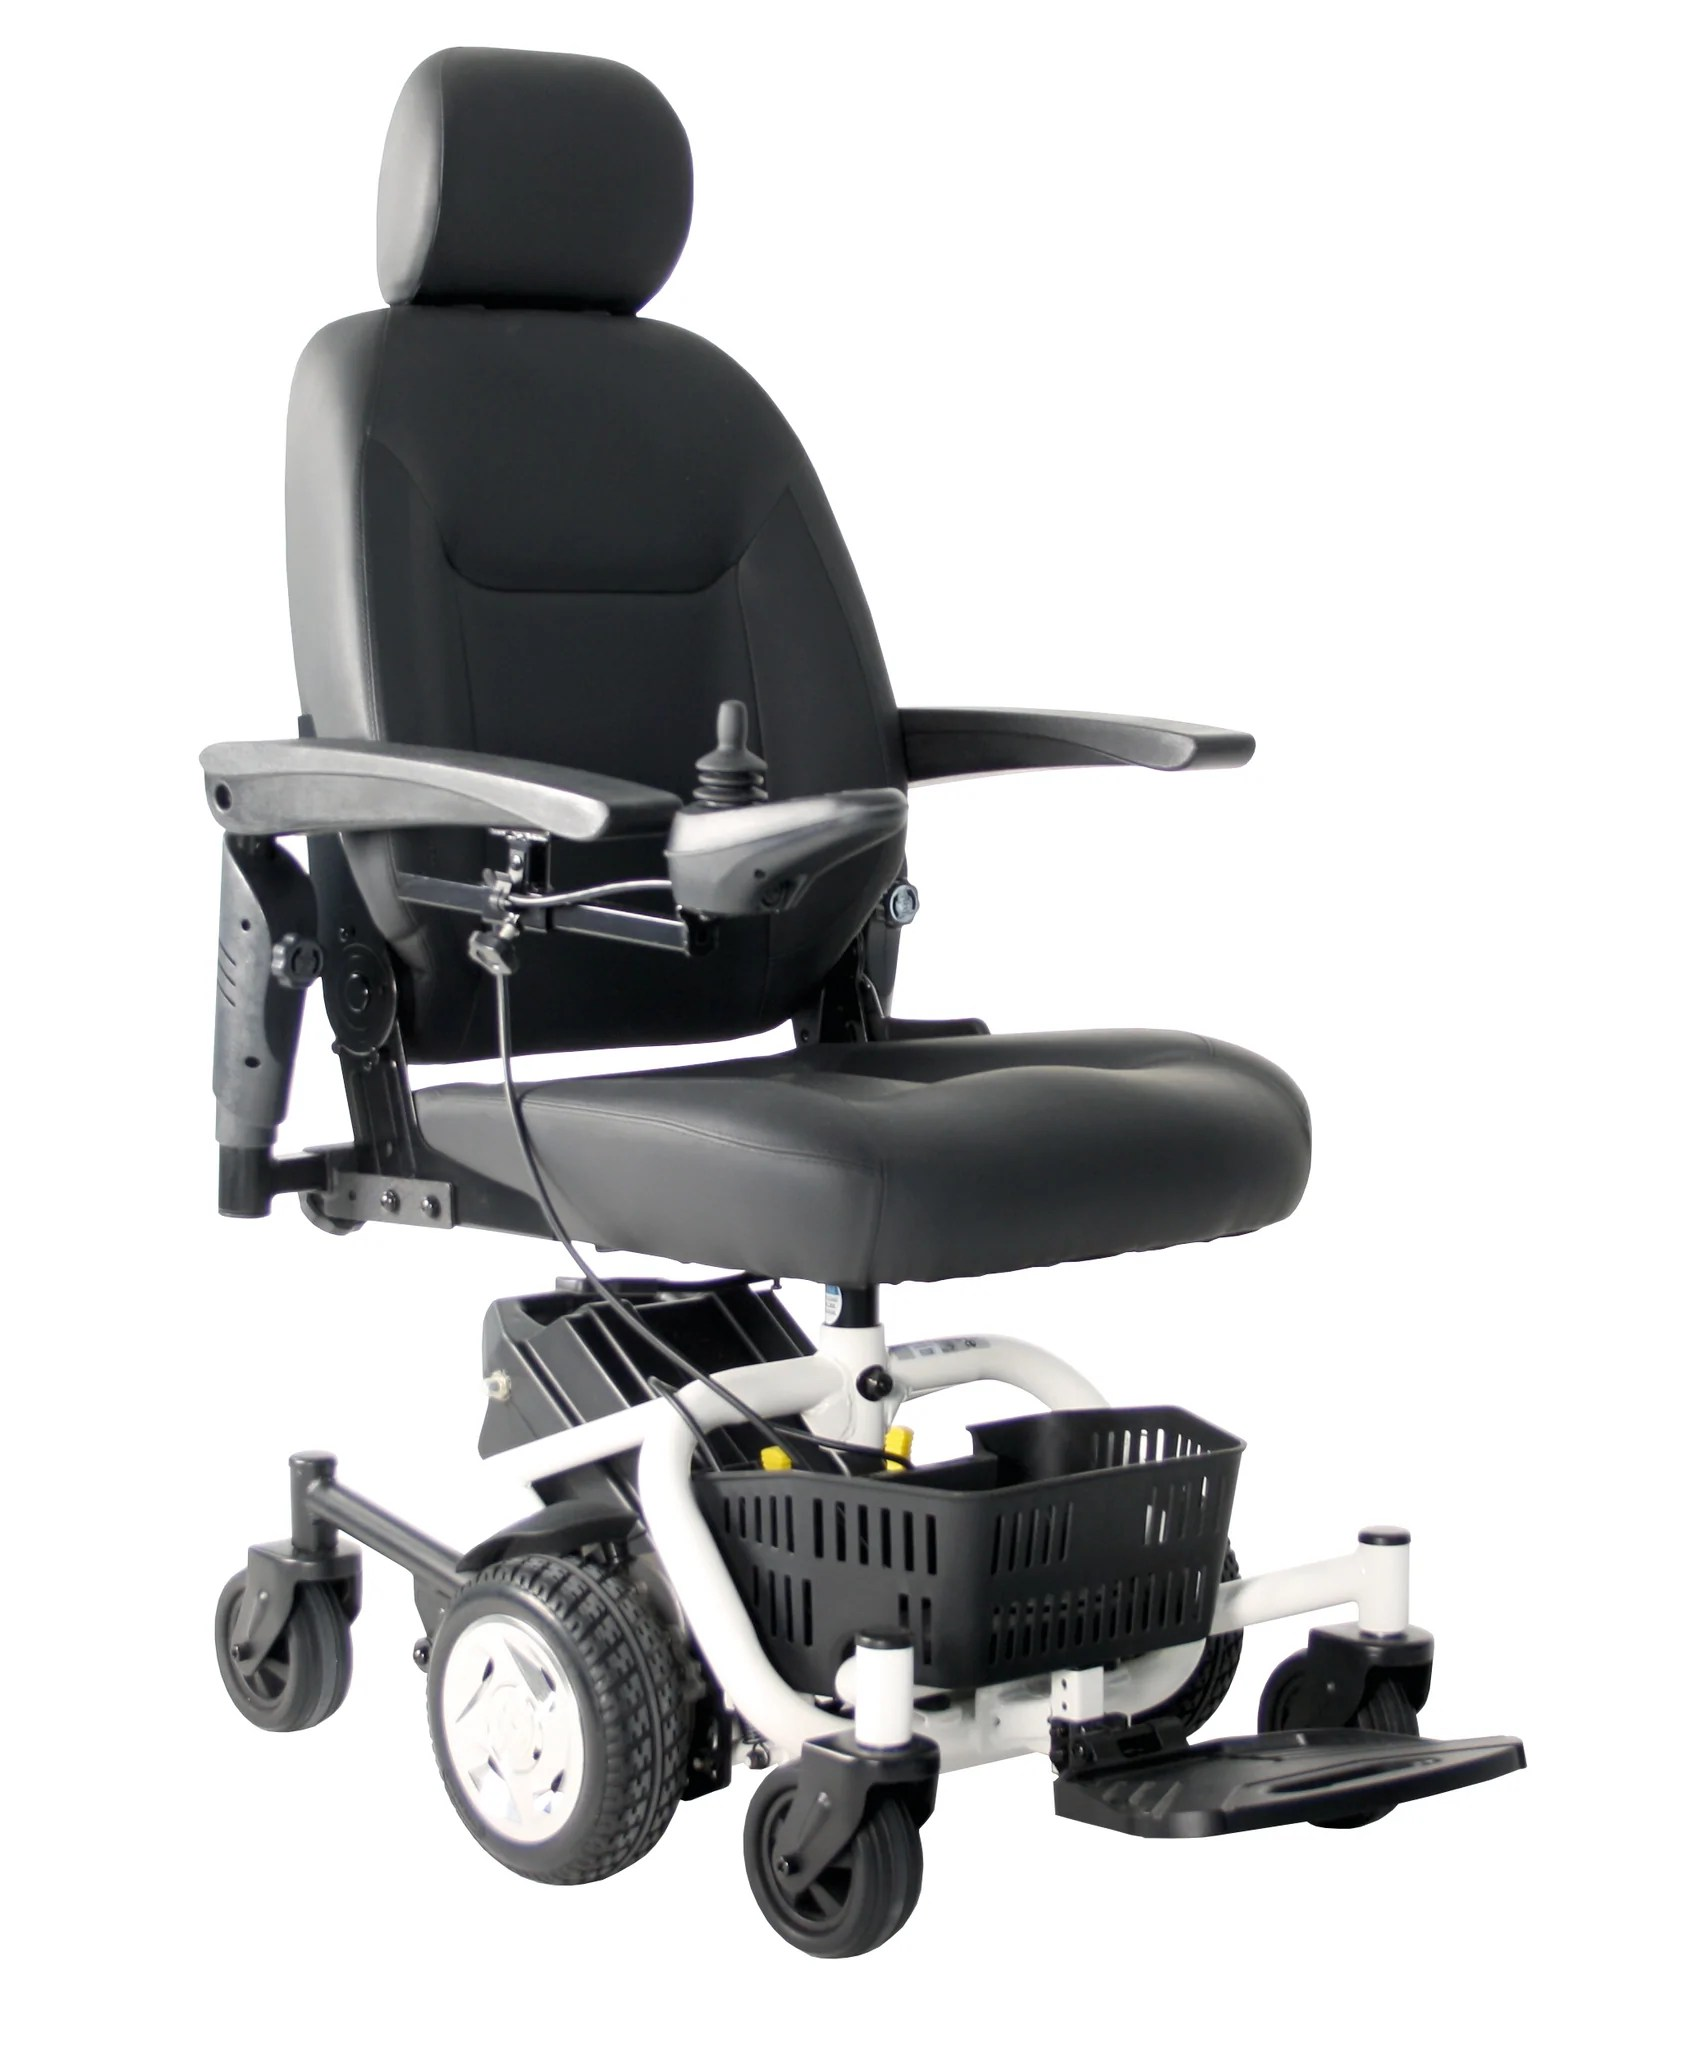 Travelux Quest Mid Wheel 4mph Power Chair Glebe Healthcare